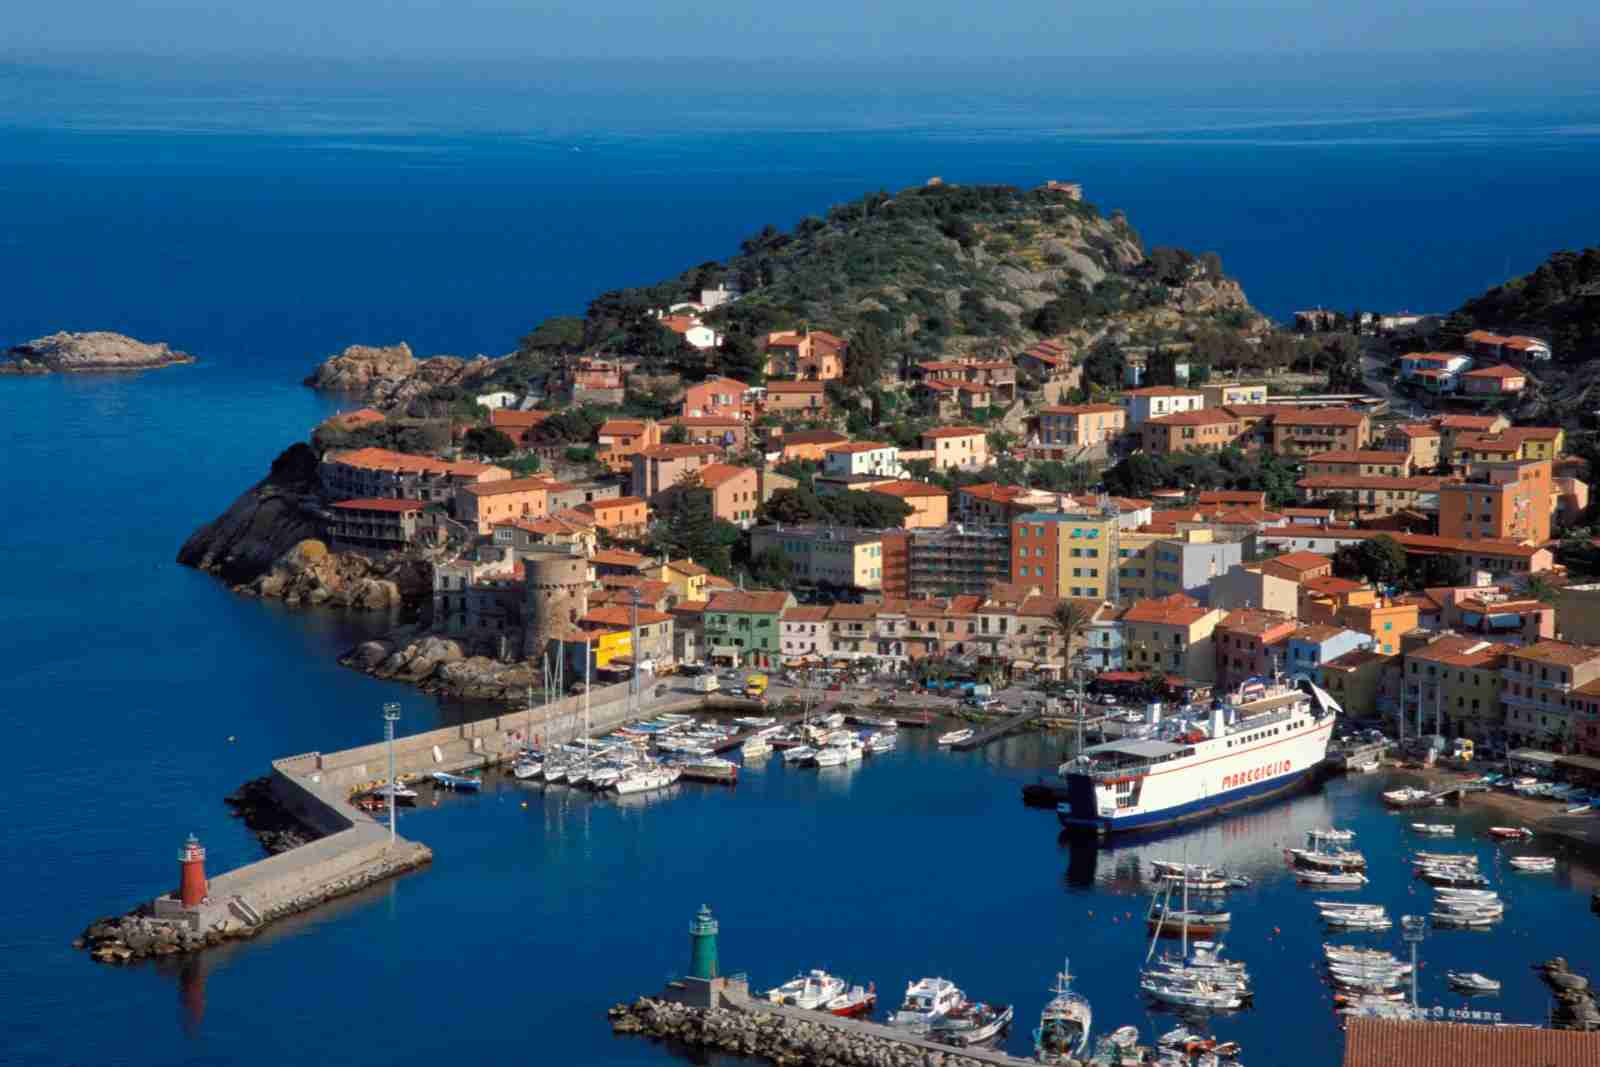 Isola Del Giglio in Tuscany. Italy. (Photo by Nico Tondini/REDA&/Universal Images Group/Getty Images)